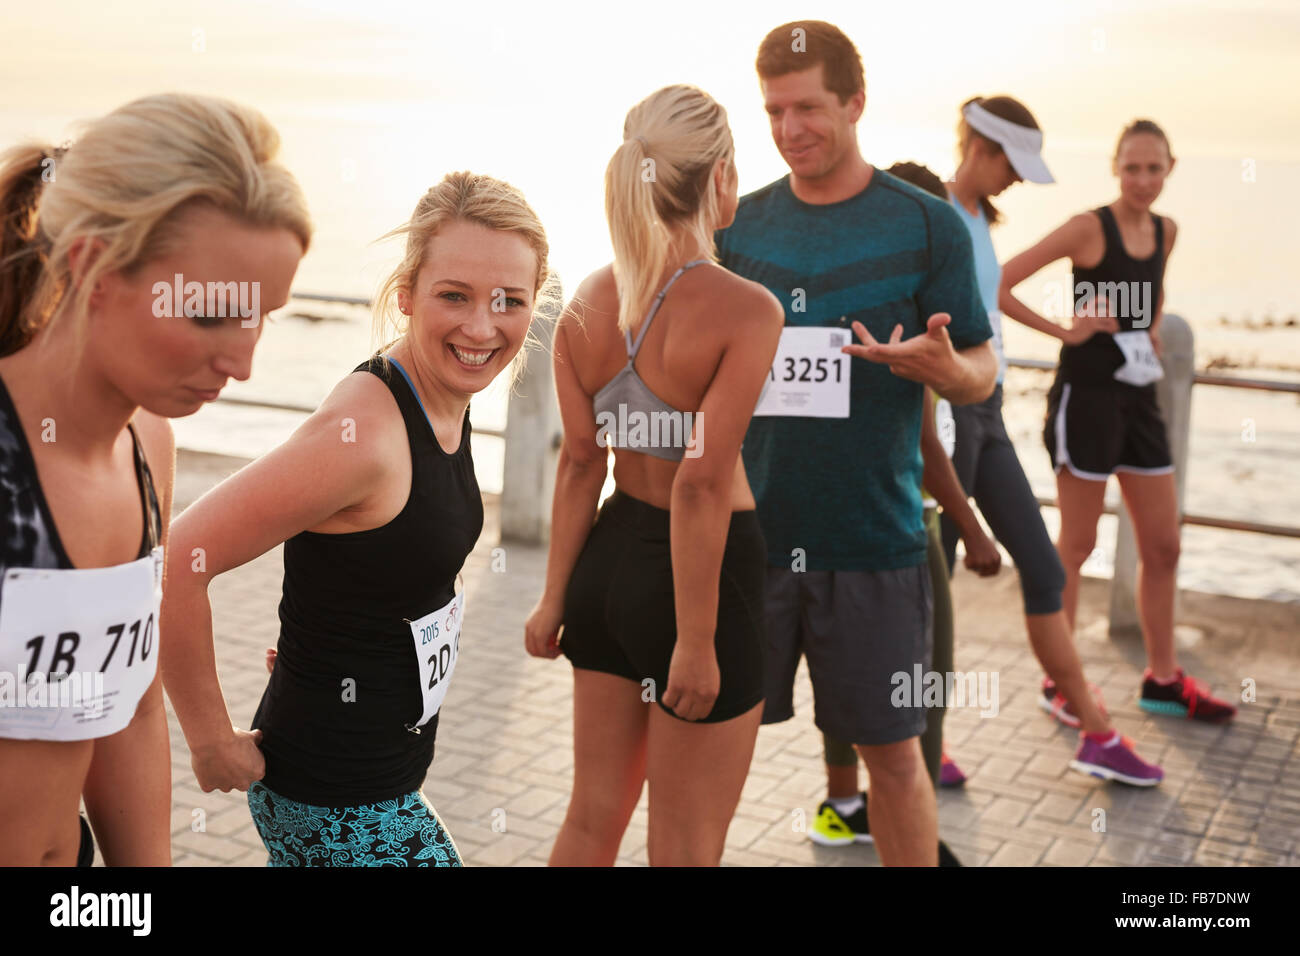 Group of happy young athletes standing on starting line and talking before start of the race. Running club group - Stock Image